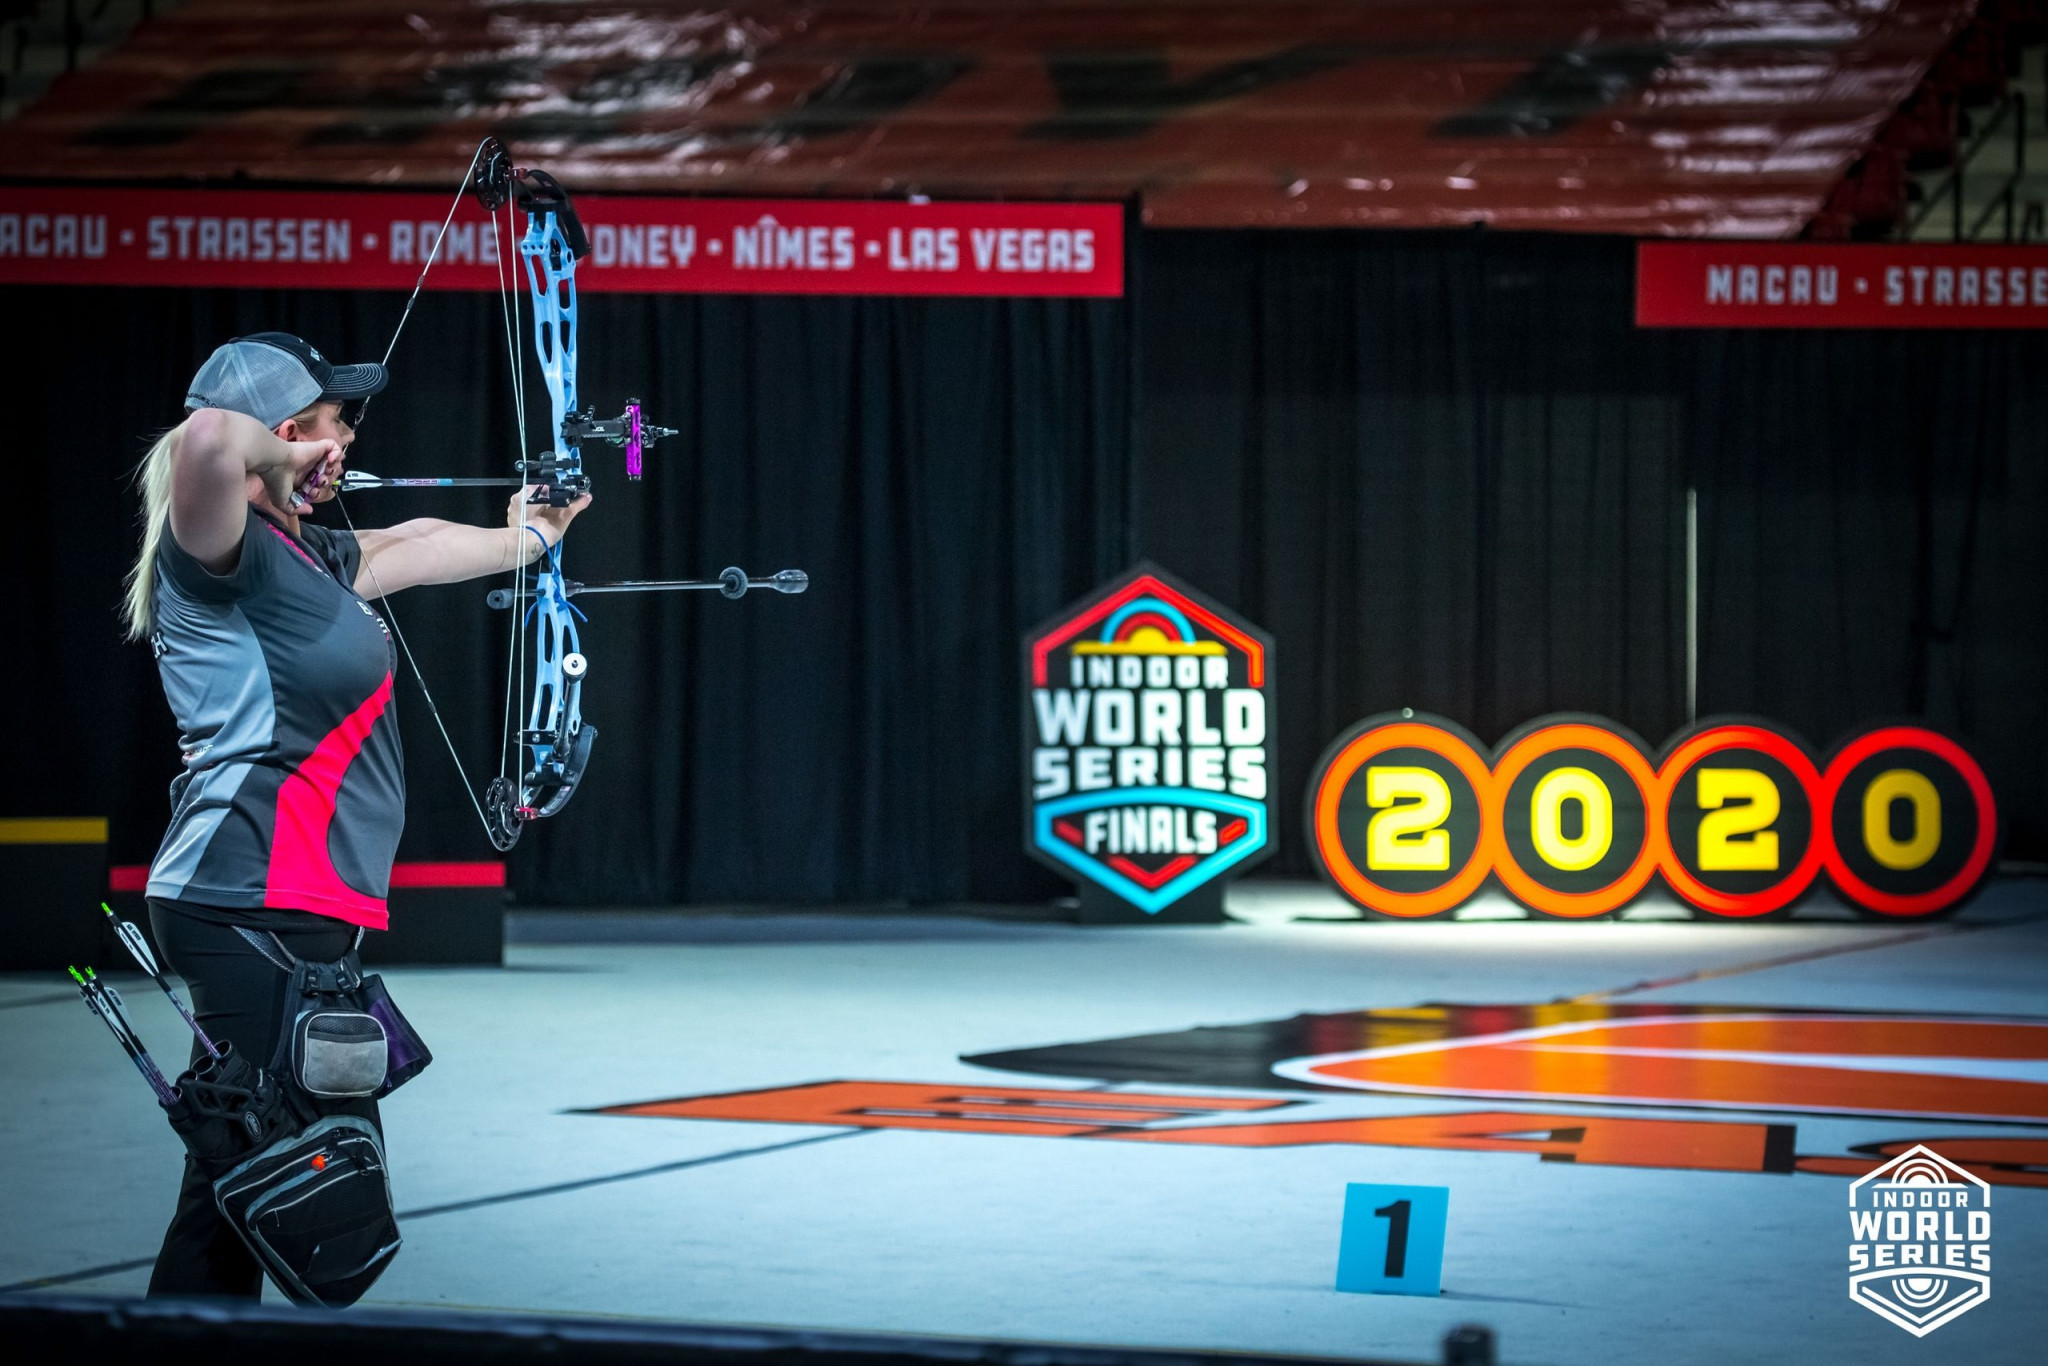 Archery will be able to participate in events held in Switzerland, France and the United States as part of the virtual Indoor Archery World Series ©World Archery